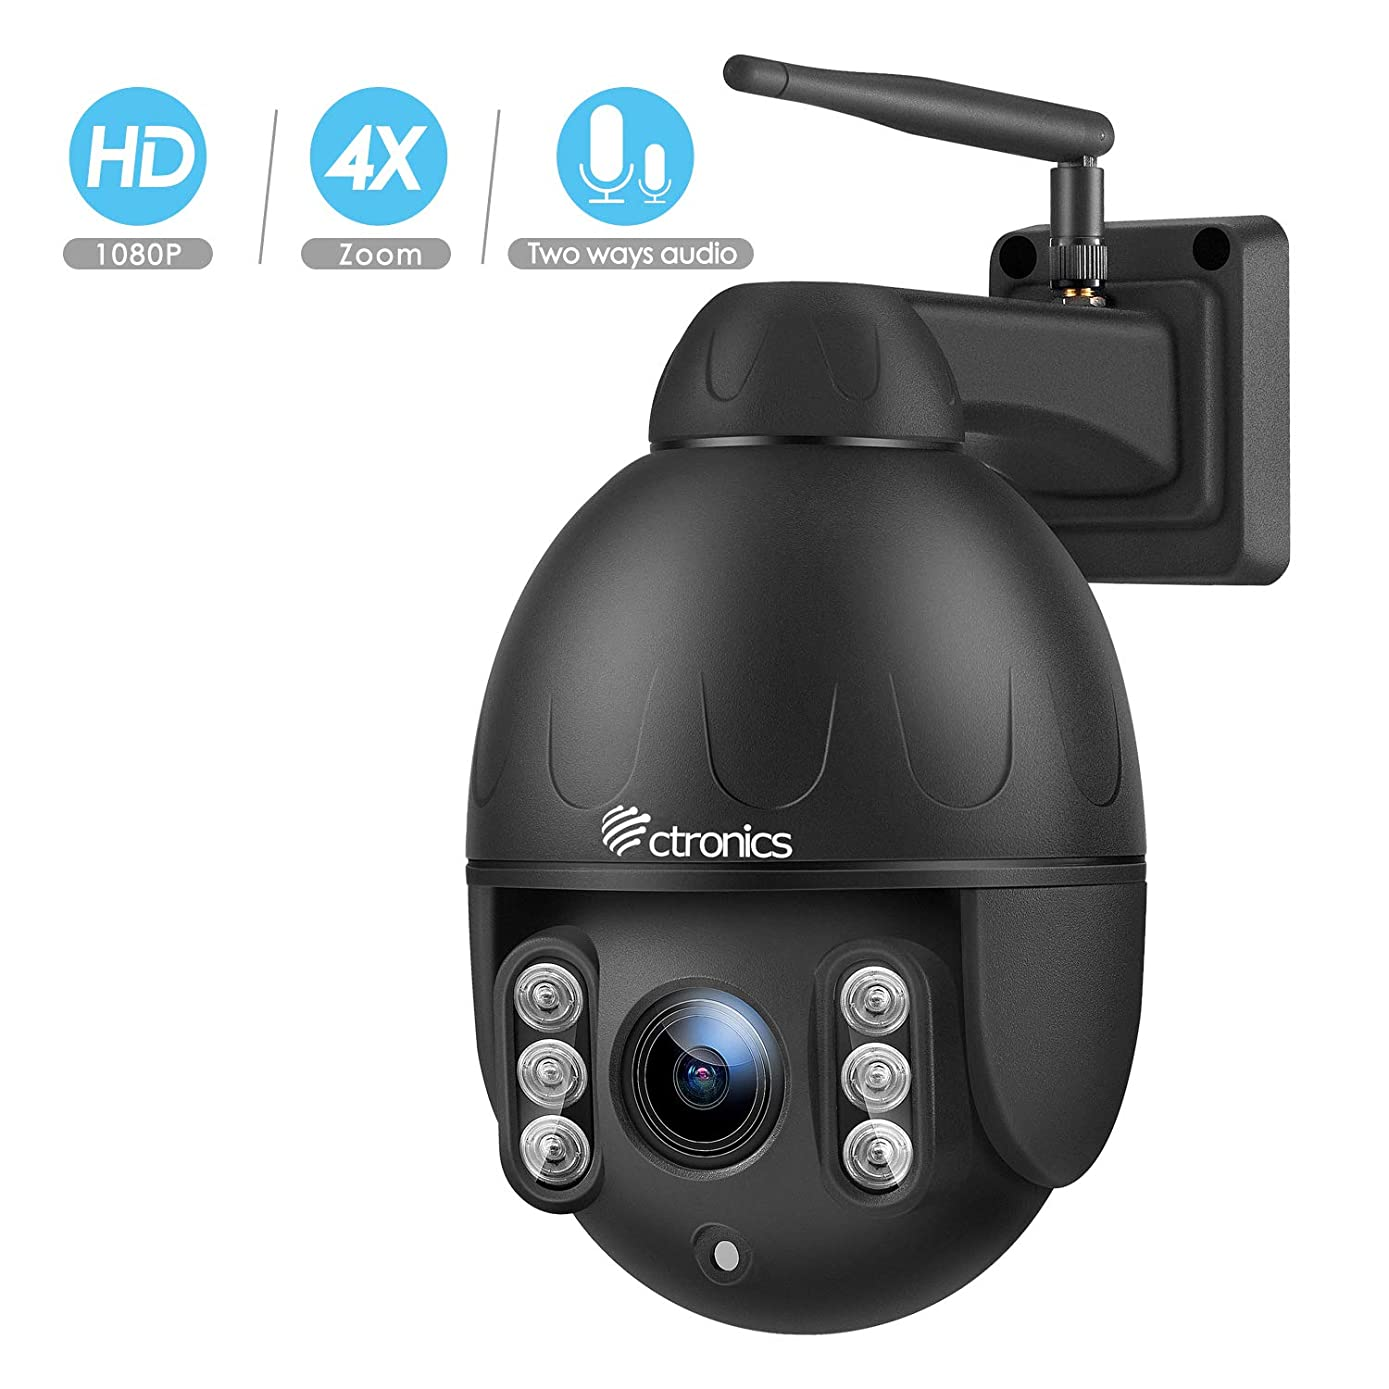 Ctronics PTZ Camera Outdoor,1080P WiFi Security IP Camera, 355° Pan 120° Tilt 4X Optical Zoom, Instant Notification of Motion Detection,165ft Night Vision, Black